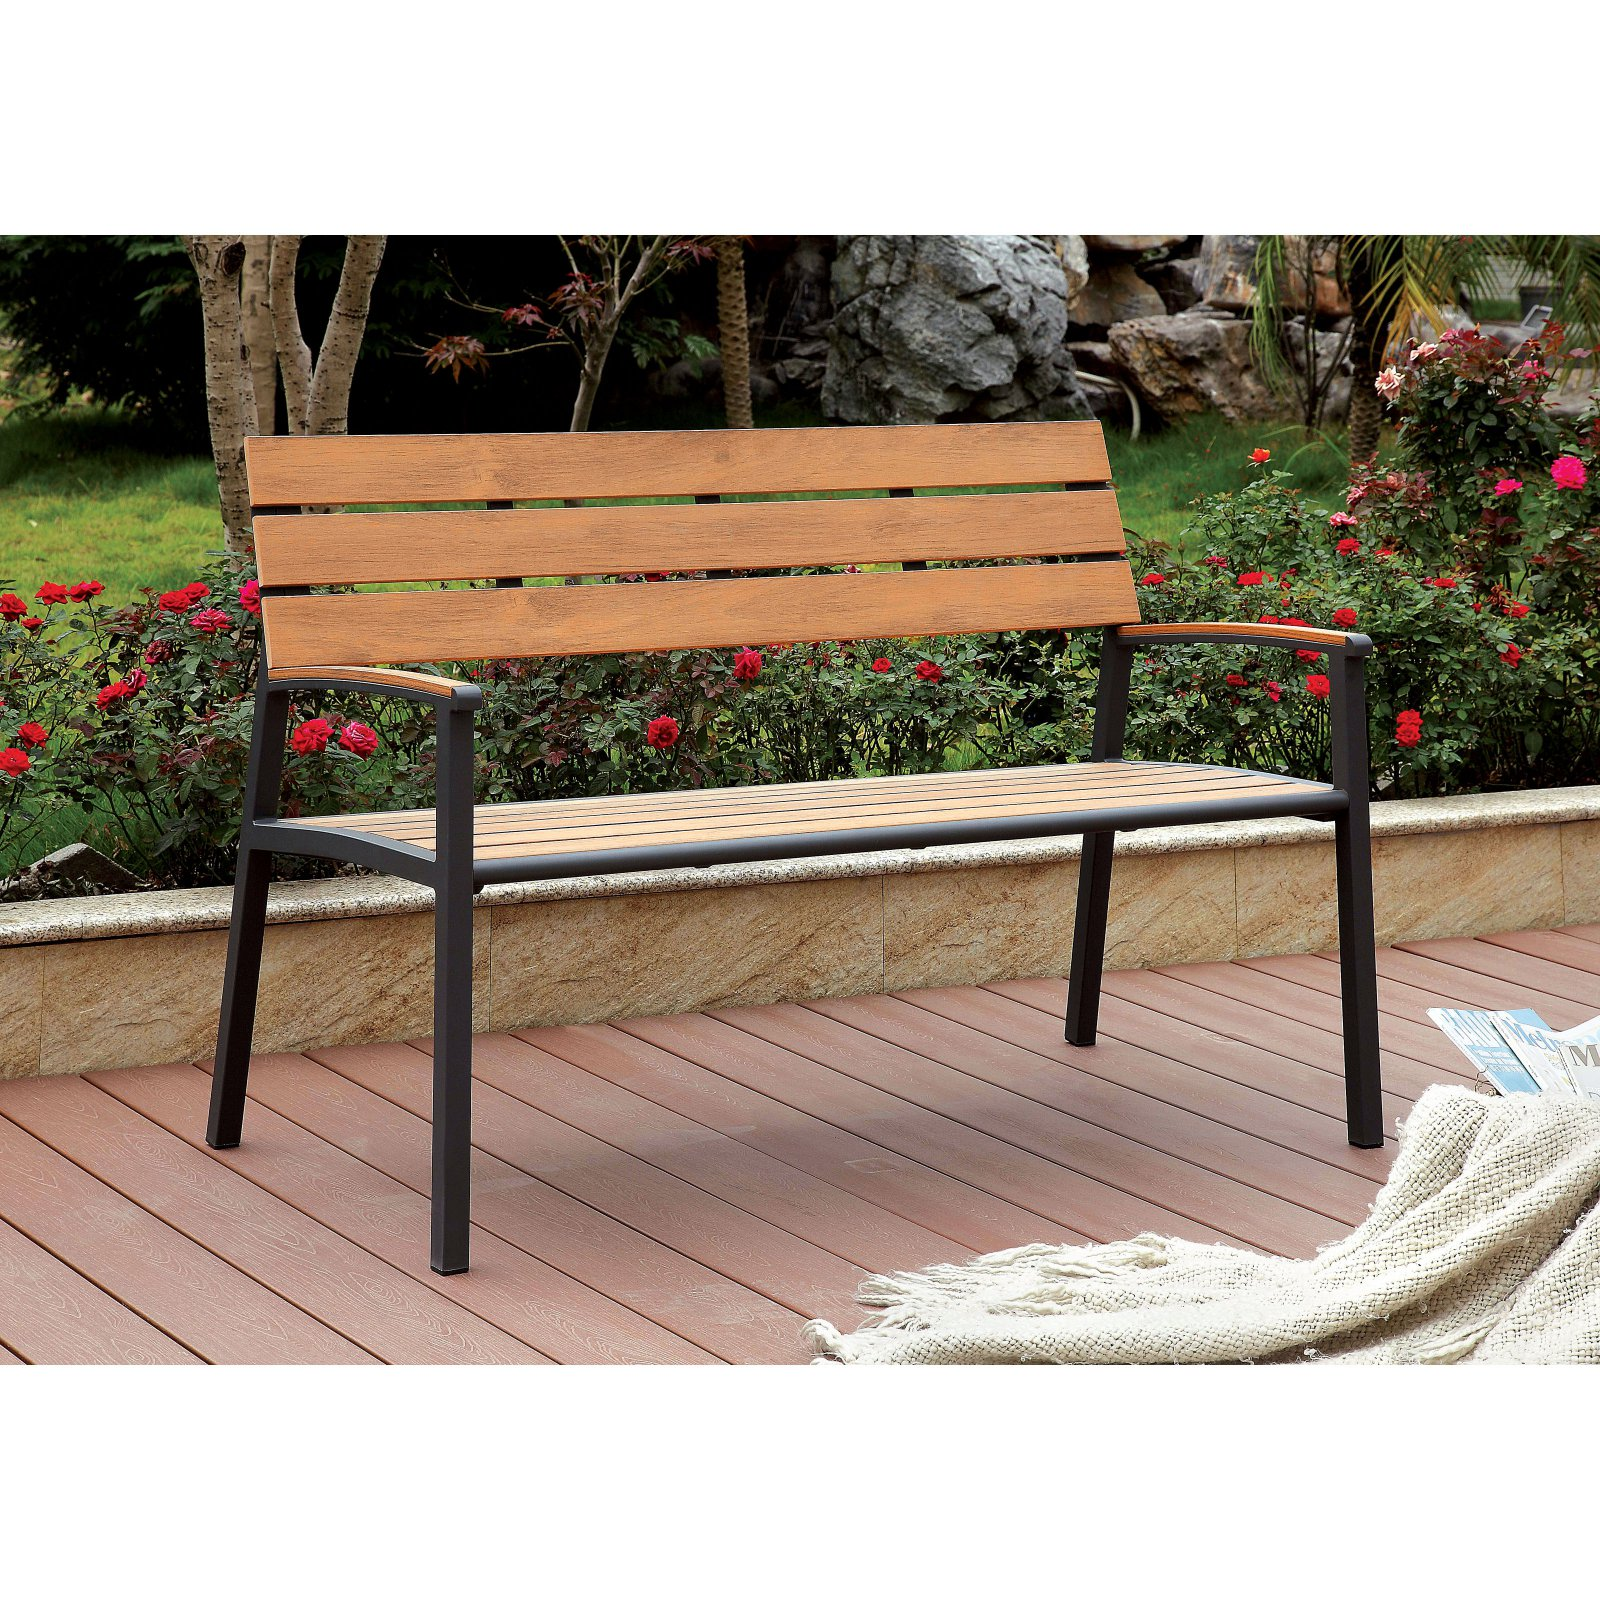 Furniture of America Lasigna 47 in. Contemporary Style Plank Panel Outdoor Bench